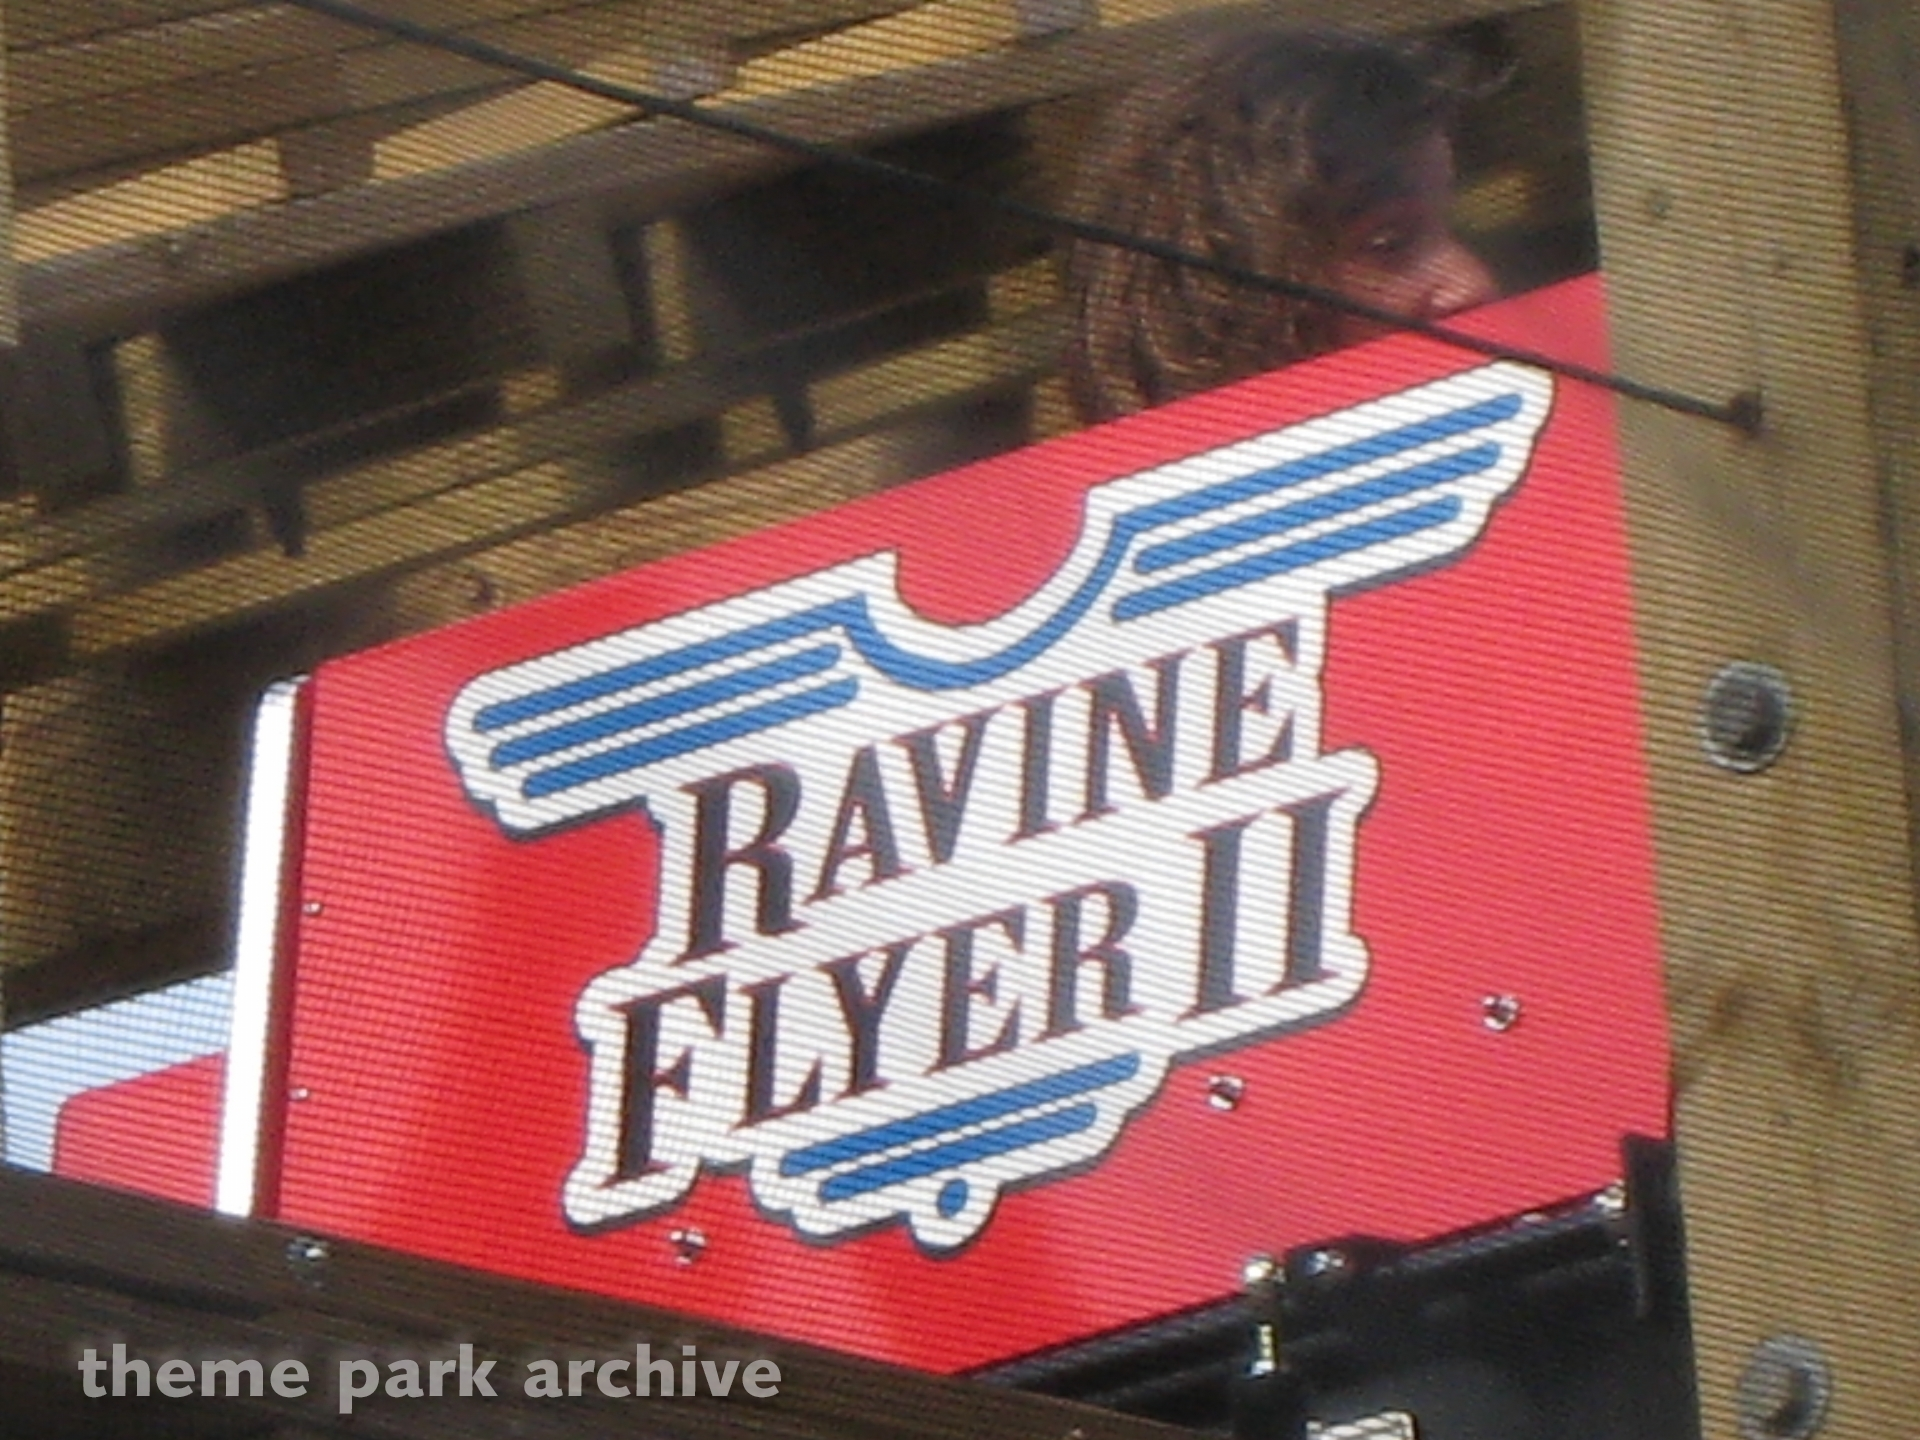 Ravine Flyer II at Waldameer Park